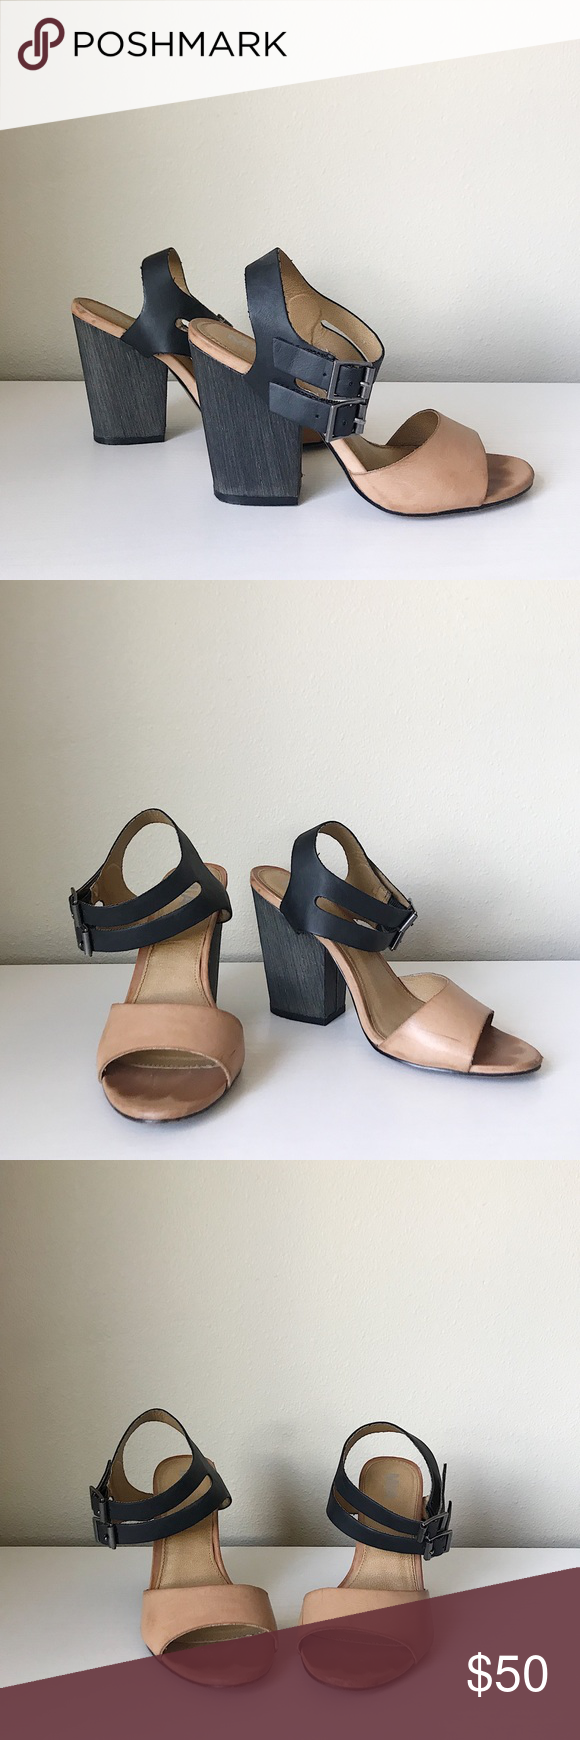 126ac4f7a2ec Spotted while shopping on Poshmark  MIA strappy block heel sandals!   poshmark  fashion  shopping  style  Mia  Shoes